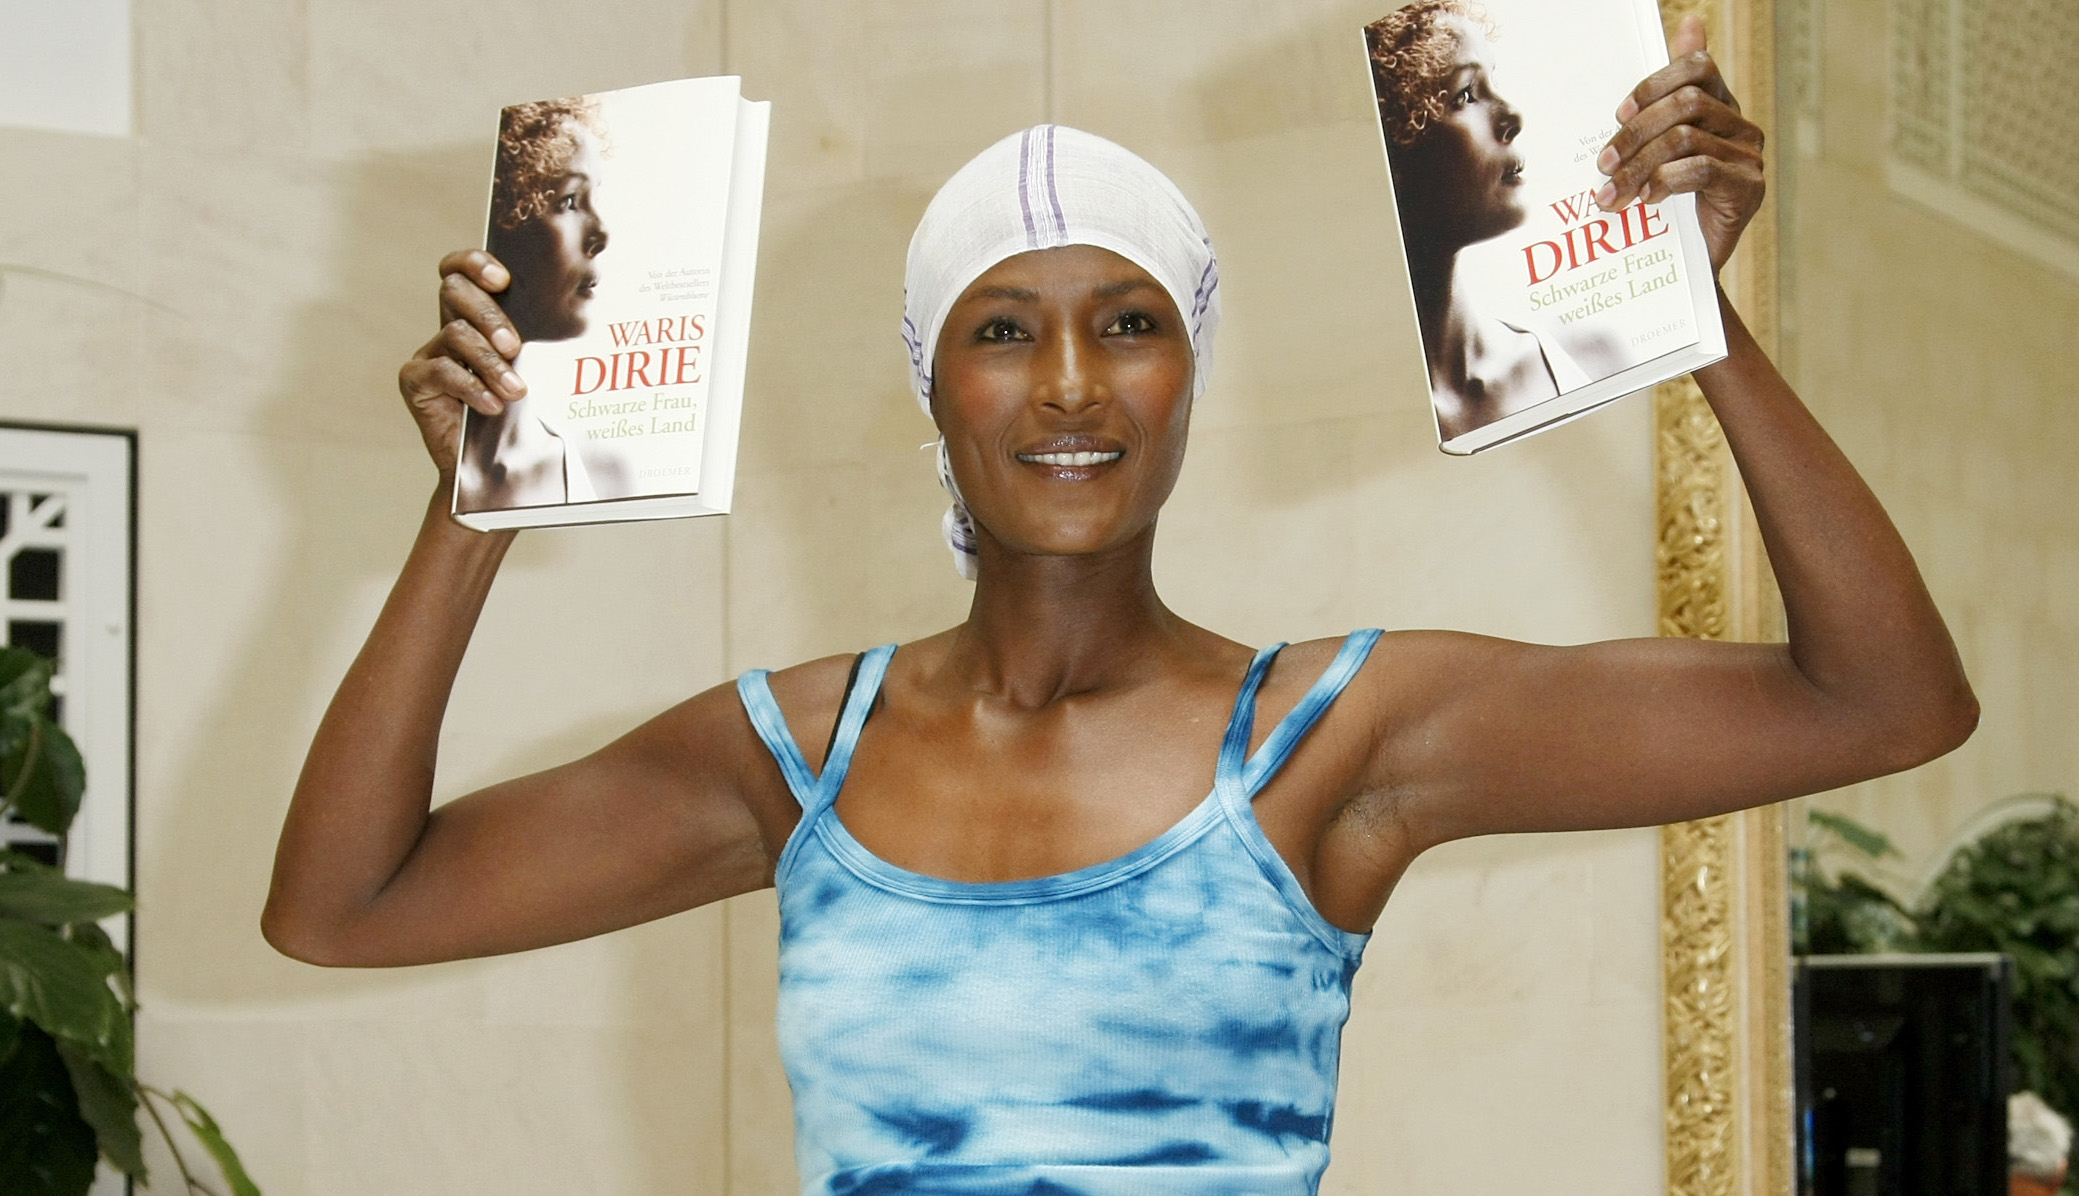 waris-dirie-with-books